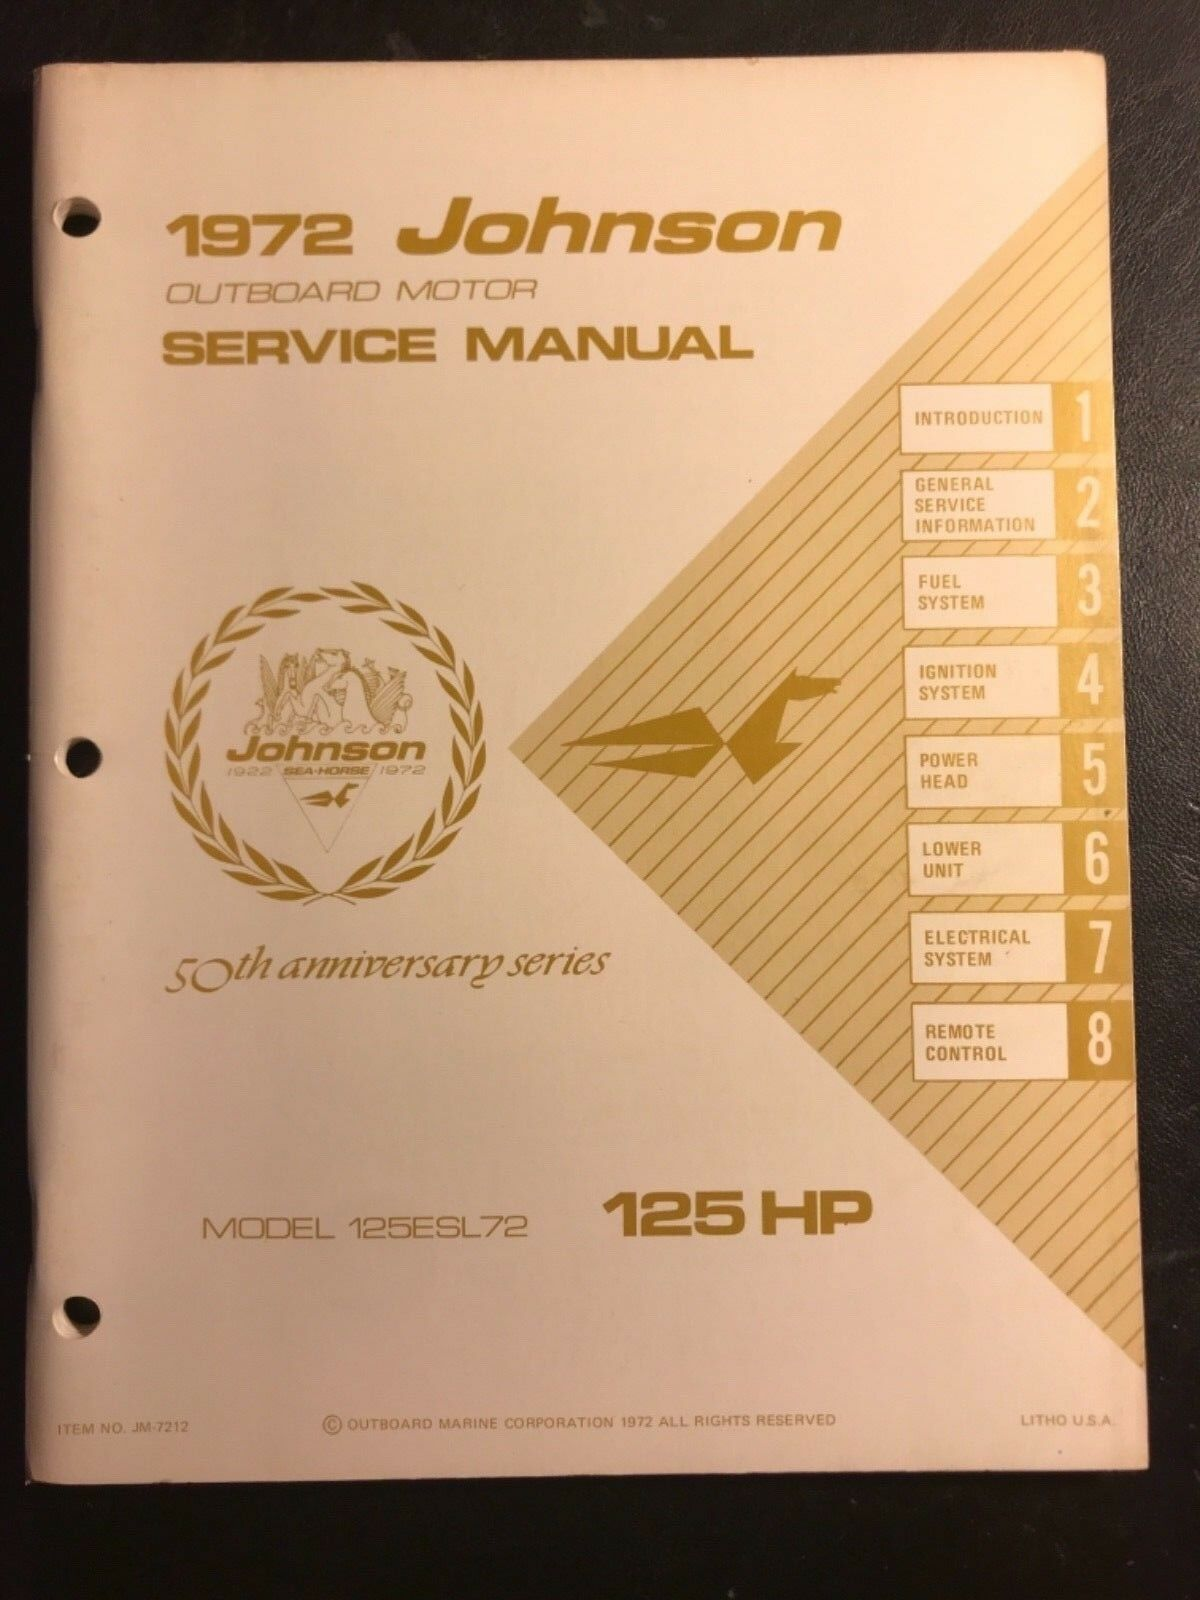 1972 Johnson Outboard Motor Service manual 125 HP Model No. 125ESL72 OMC 1  of 1Only 1 available ...